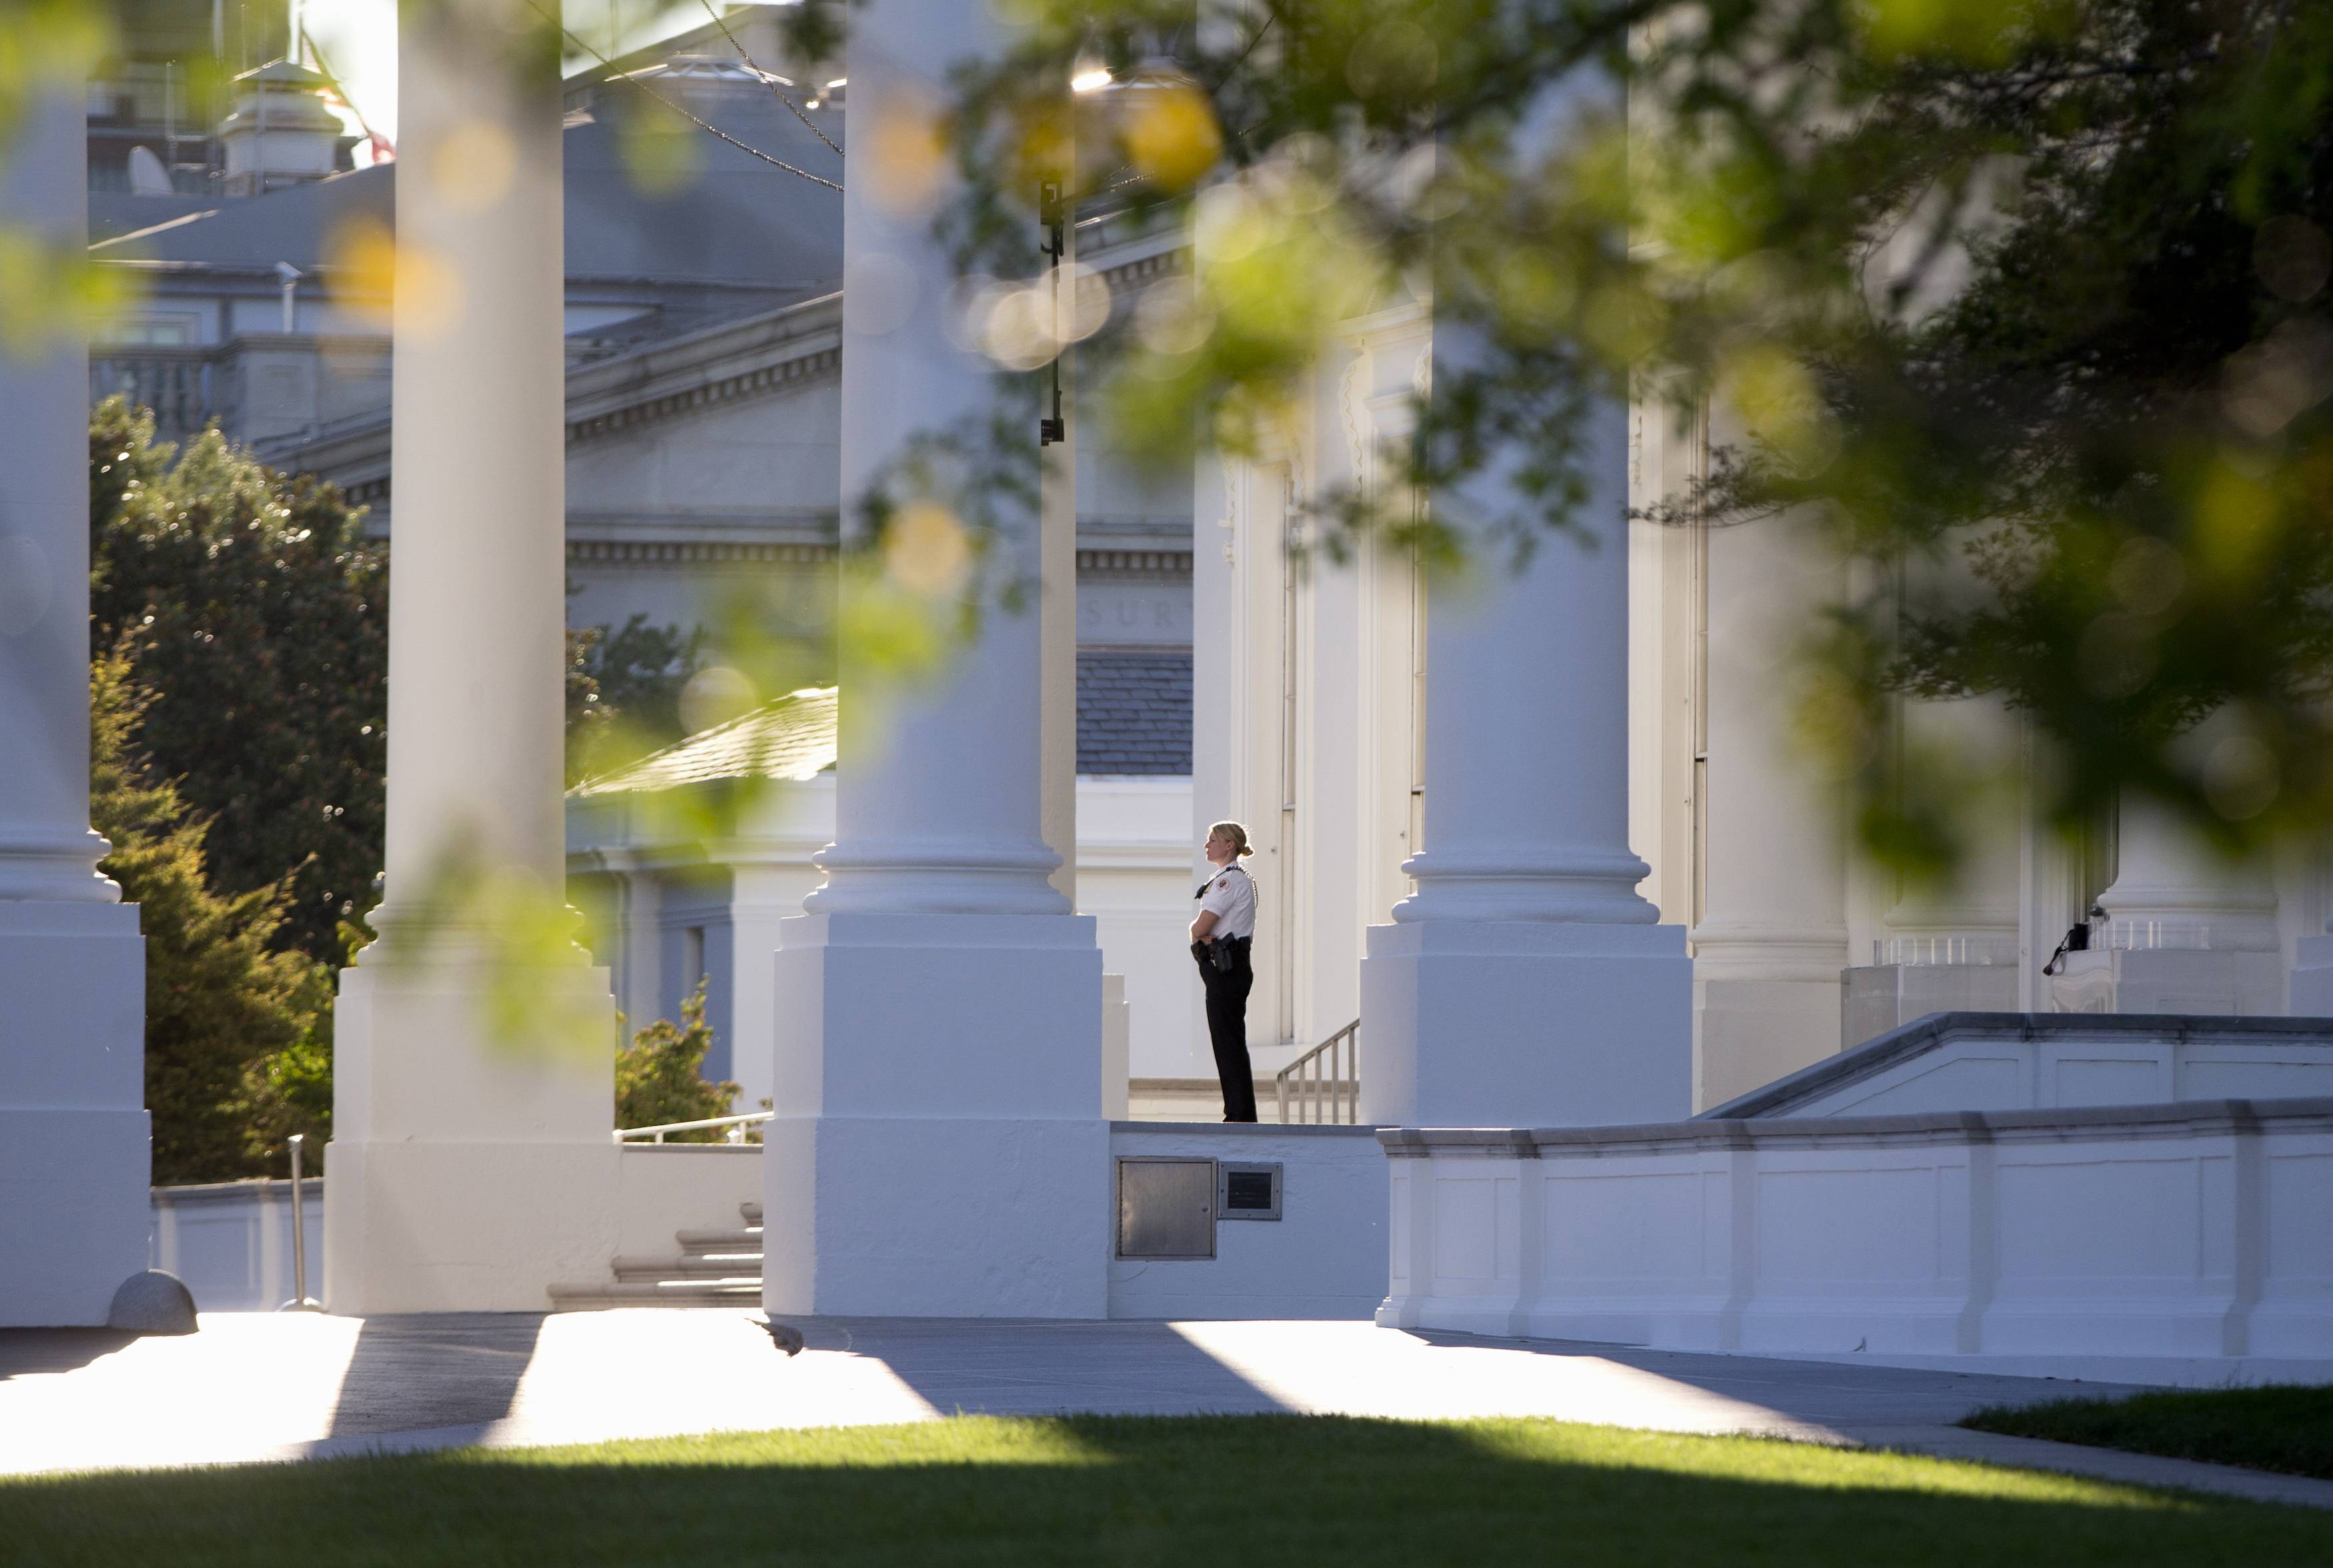 Secret Service Director Julia Pierson said Tuesday the front door to the White House now locks automatically in a security breach.